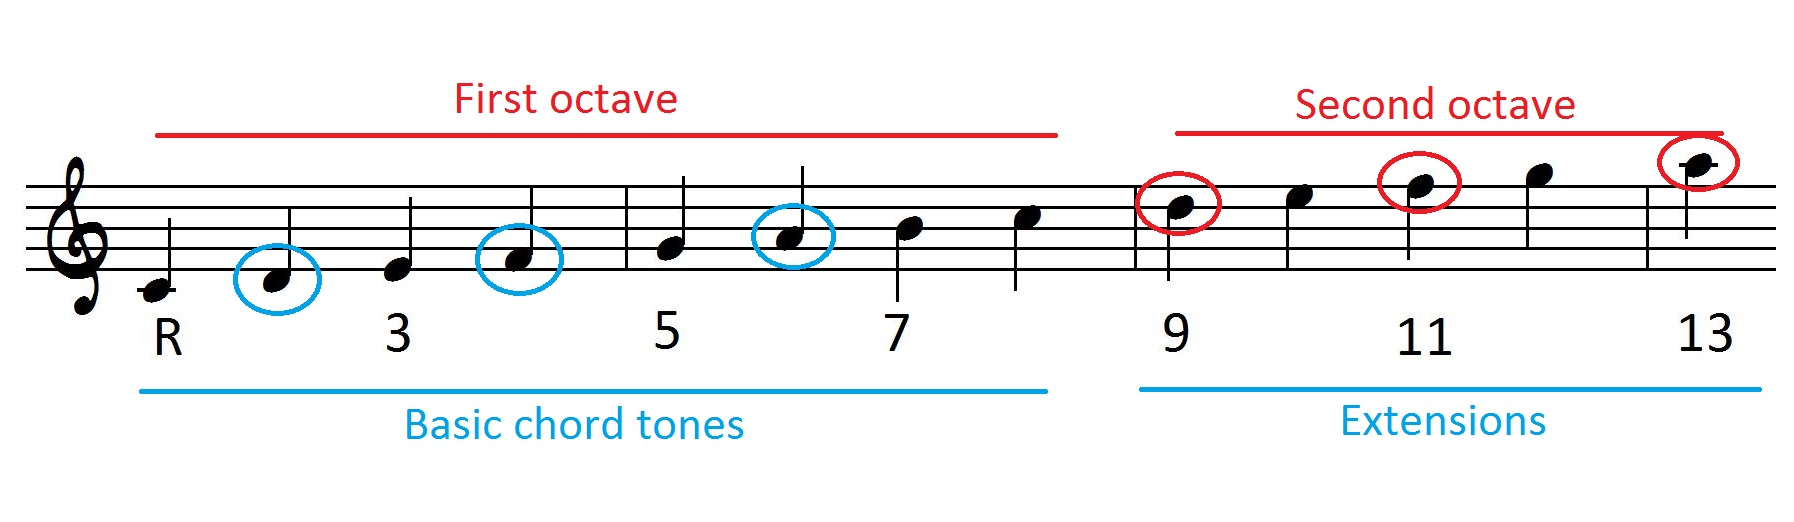 How to build chord extensions and alterations learn jazz standards which extensions can you use on 7th chords hexwebz Gallery